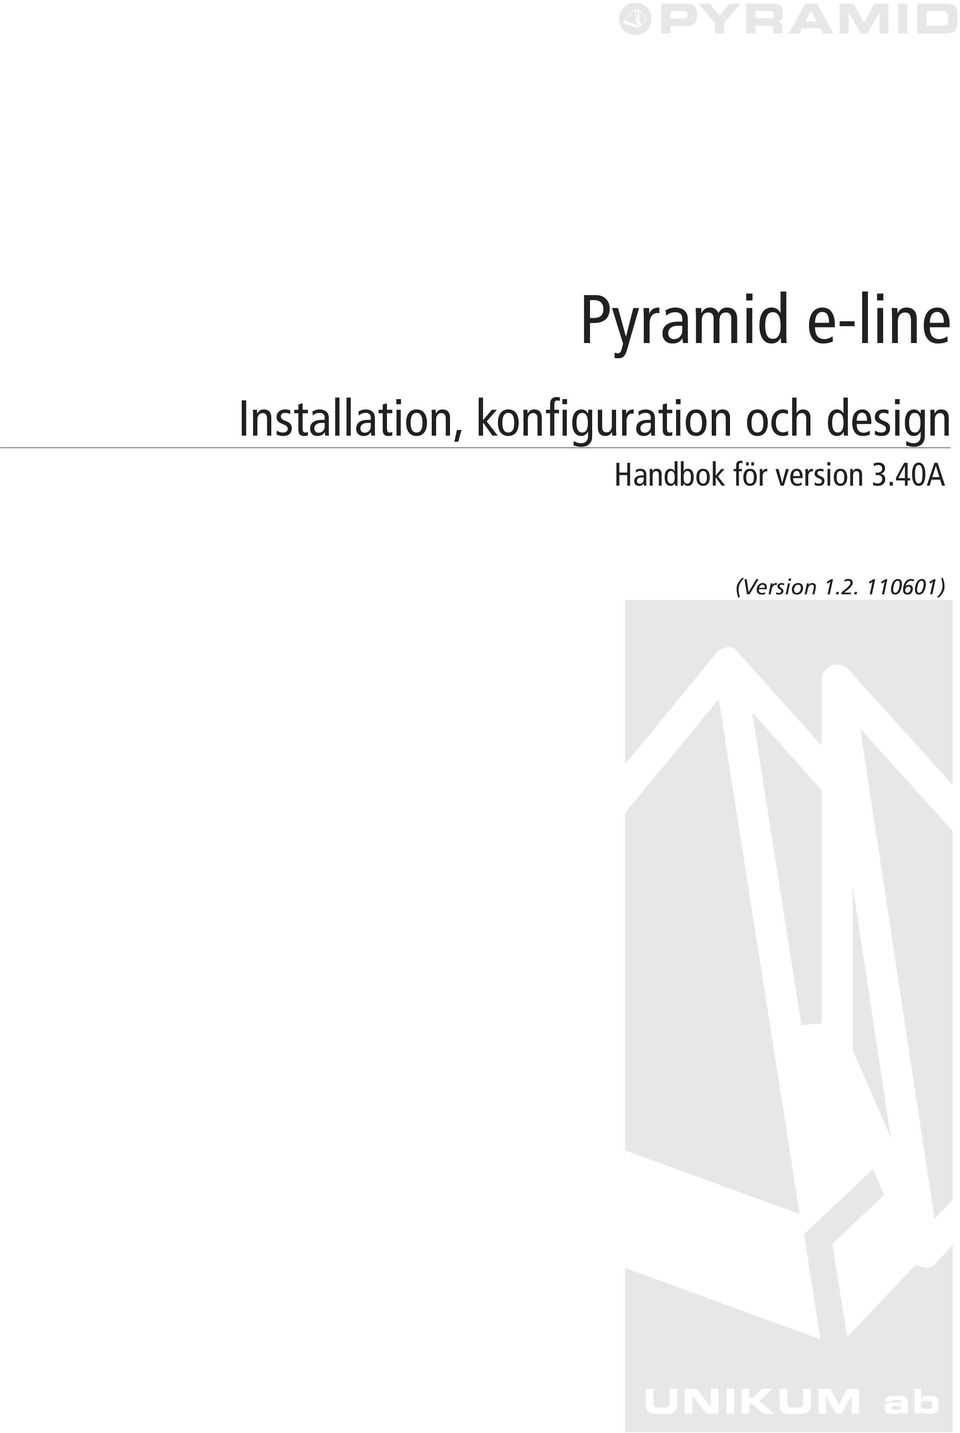 konfiguration och design